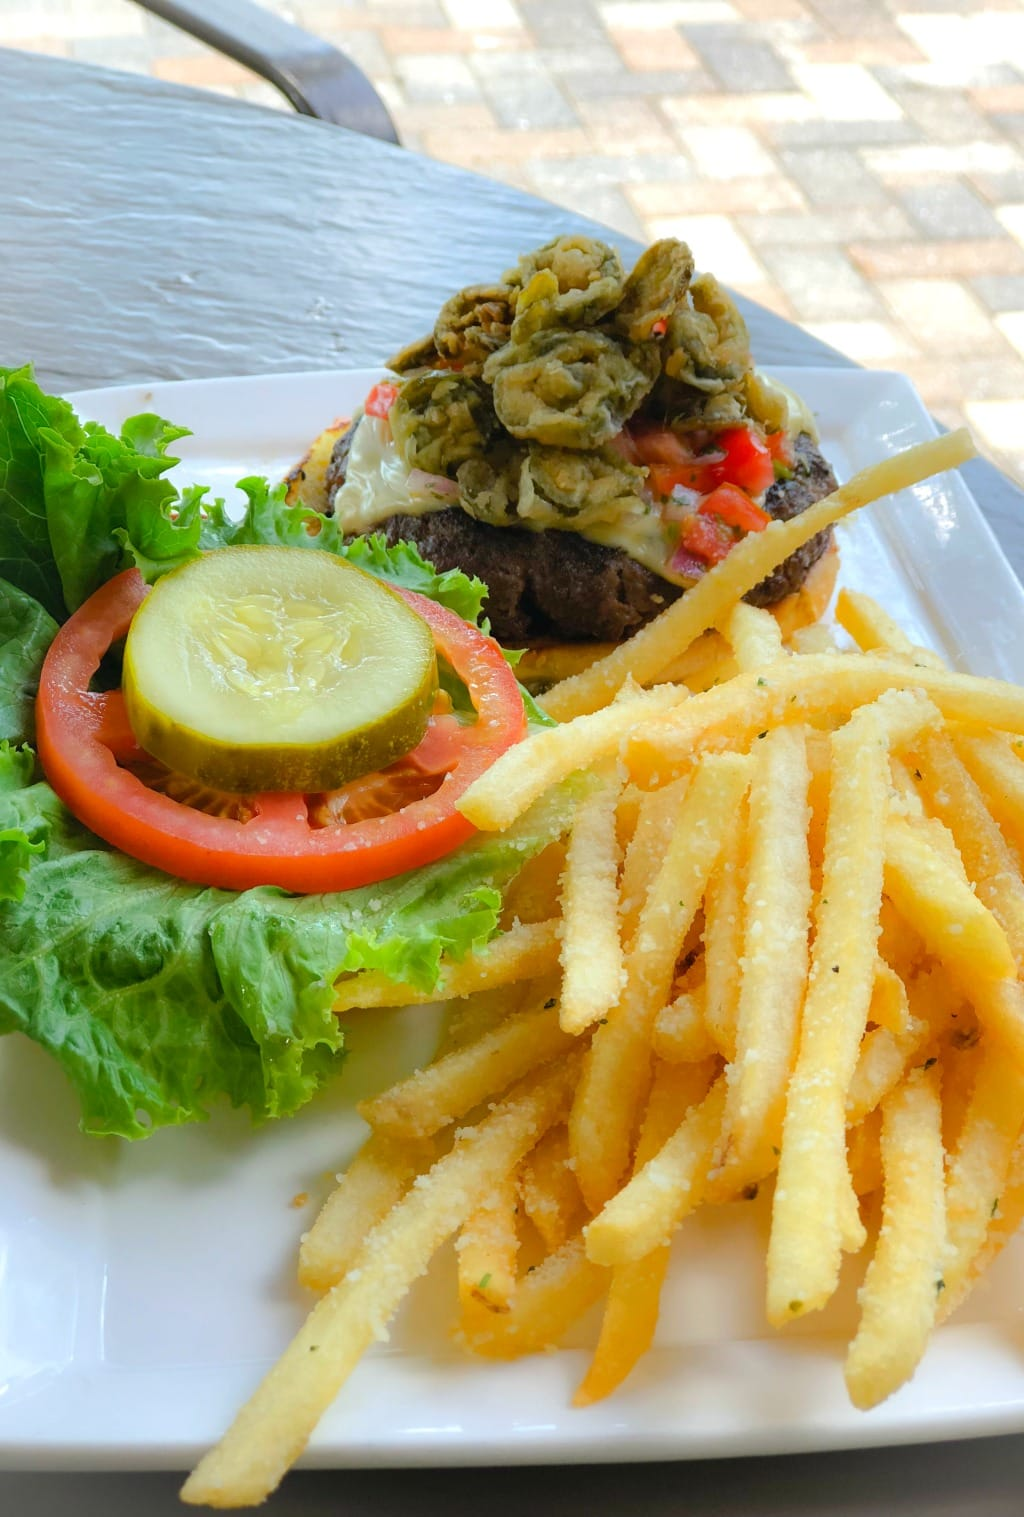 fiesta burger and truffle fries at market salamander grille